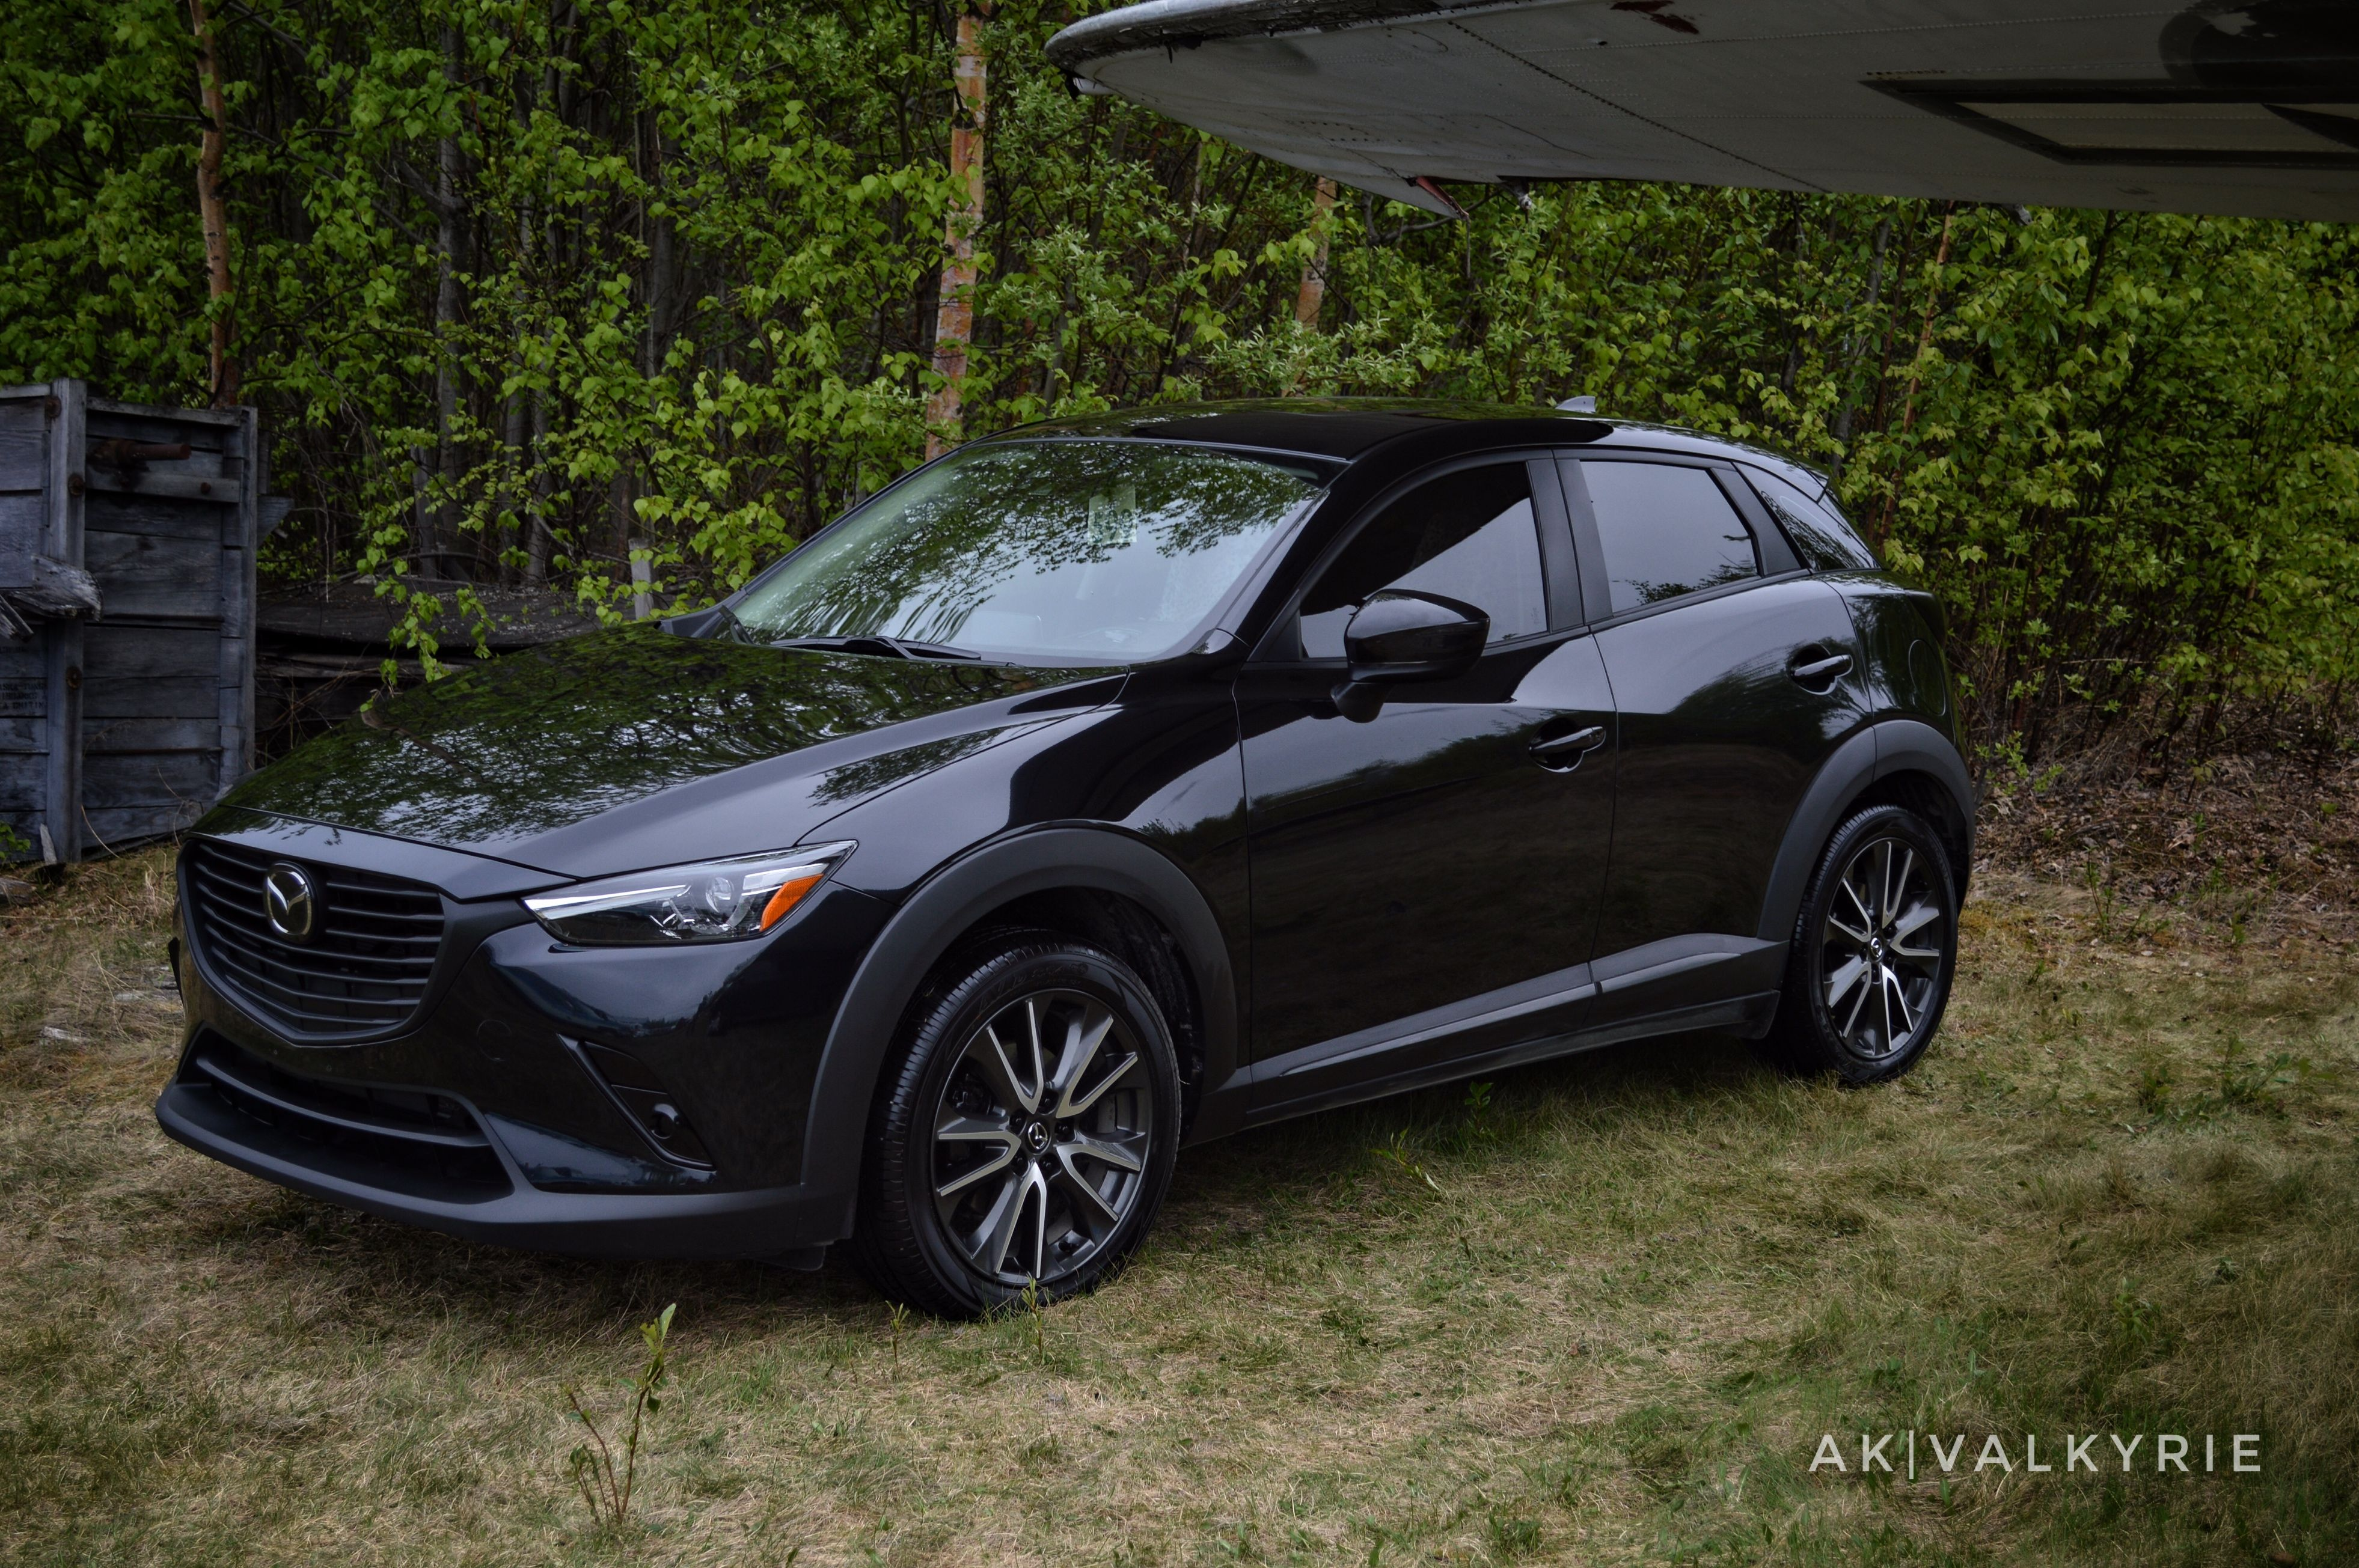 grand oct in am mazda cx get awd review mouf my photo touring